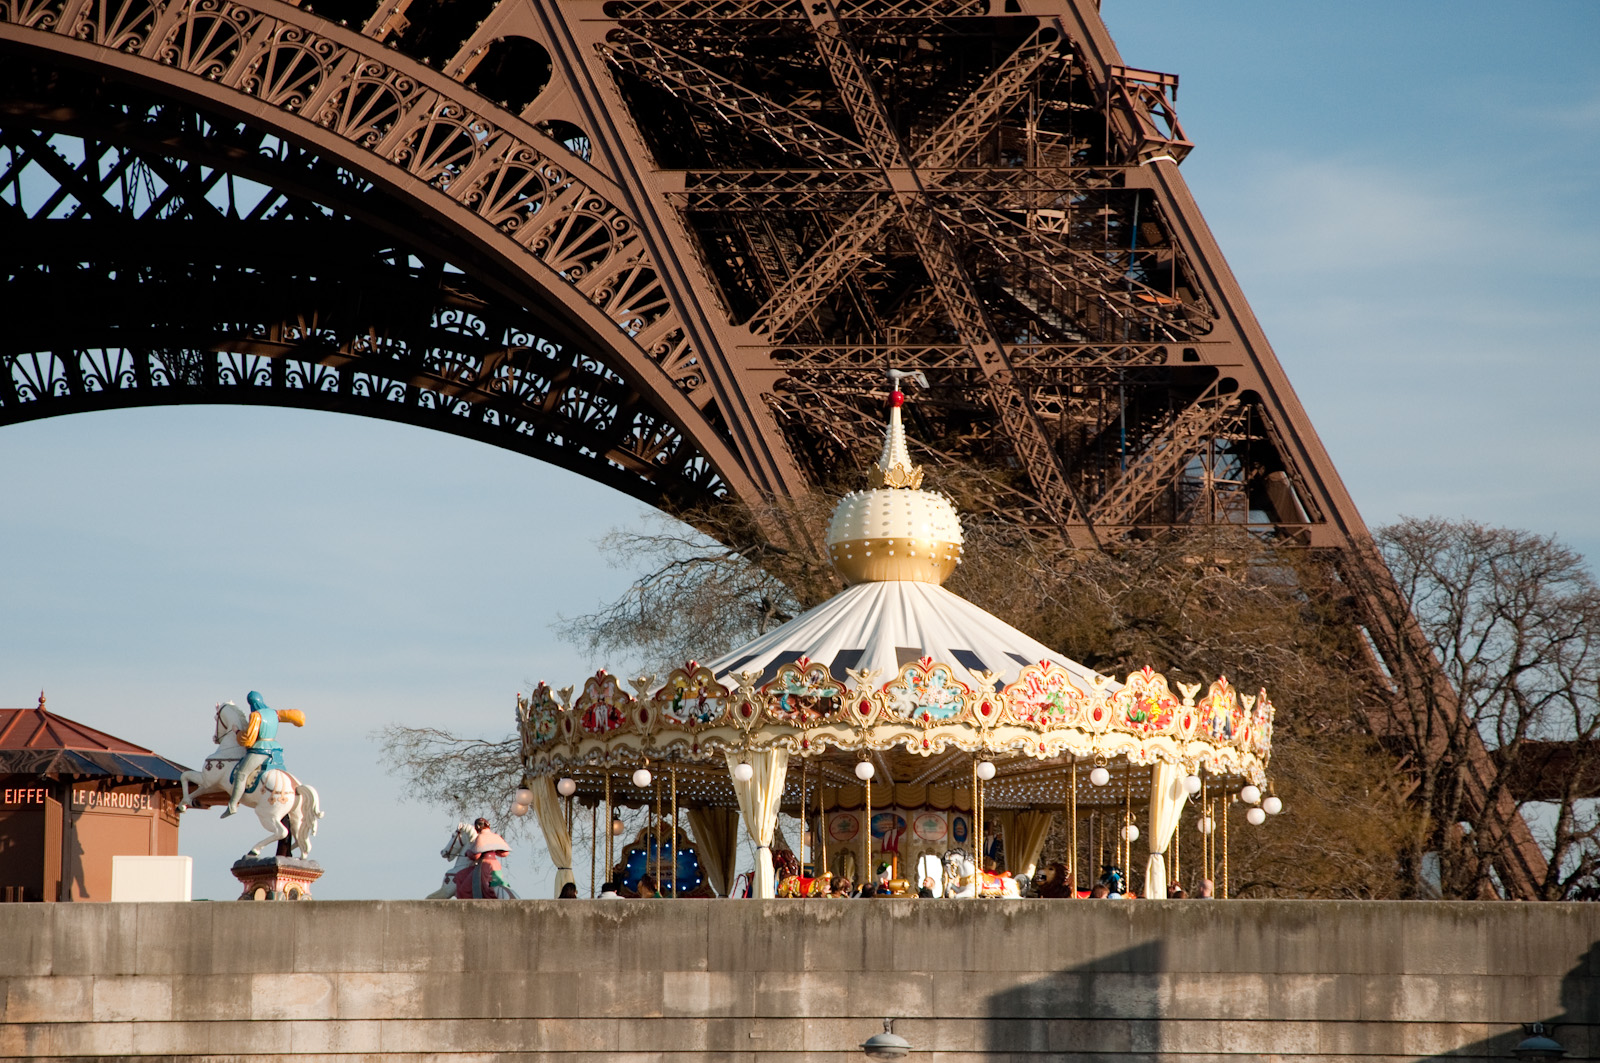 Carousel beneath the Eiffel Tower - Carousels in Europe